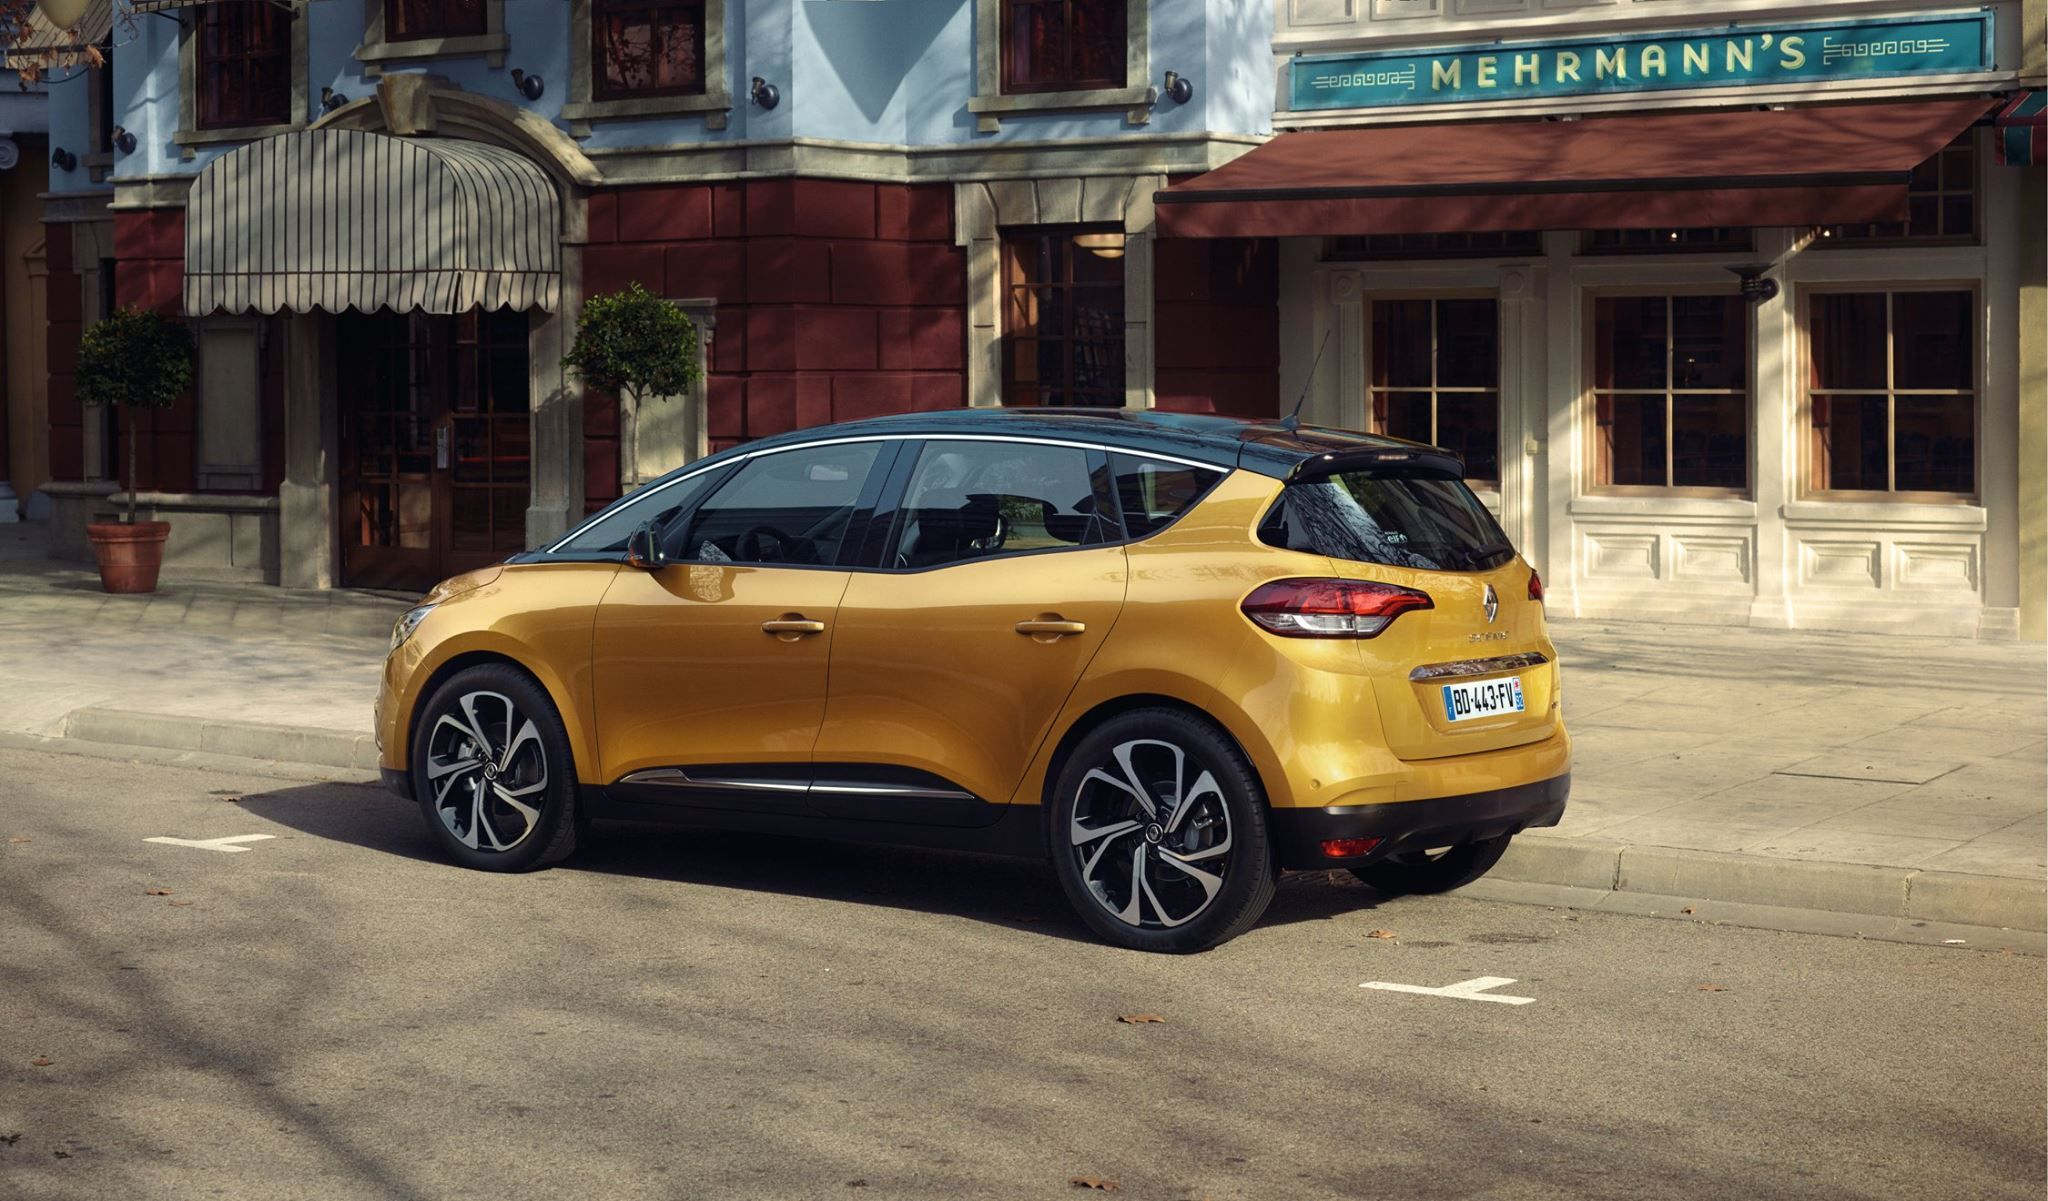 New 2016 Renault Scenic Family Crossover With 20 Inch Wheels Scenic Renault New Renault Renault Scenic 2017